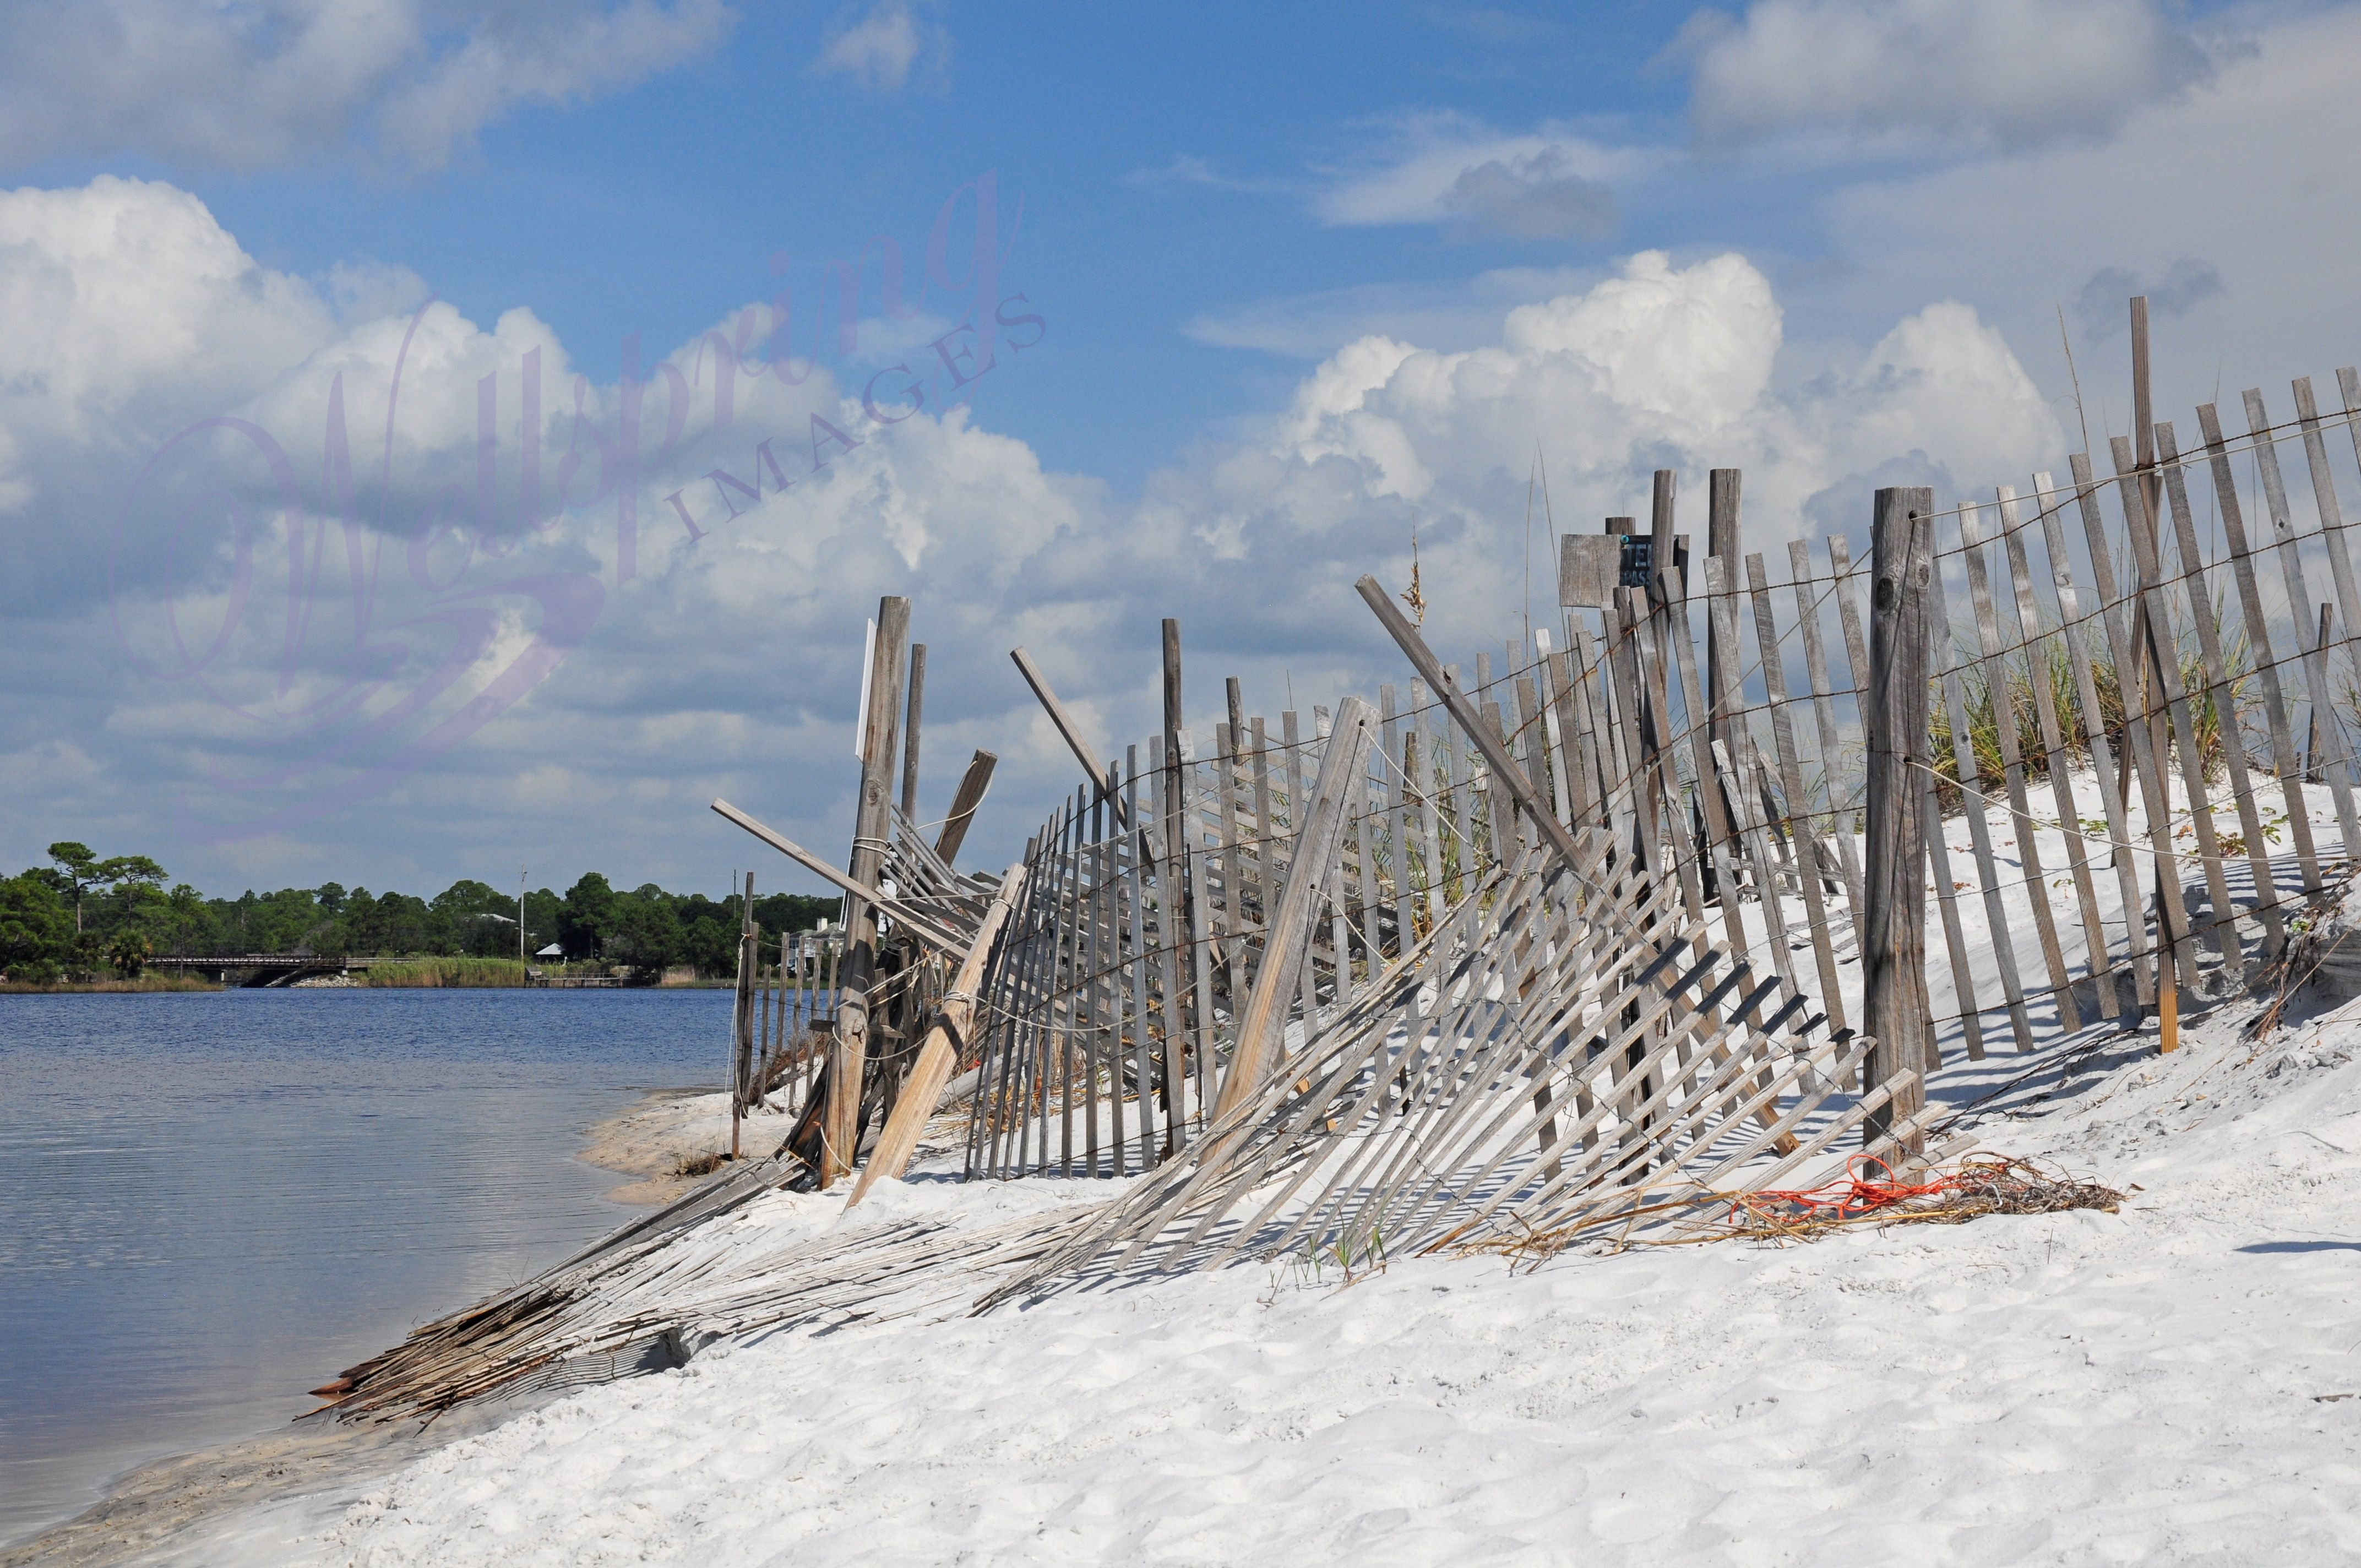 In need of repair, but still pretty,  I love the look of this old fence on the inlet beach.  Fluffy clouds never hurt either.